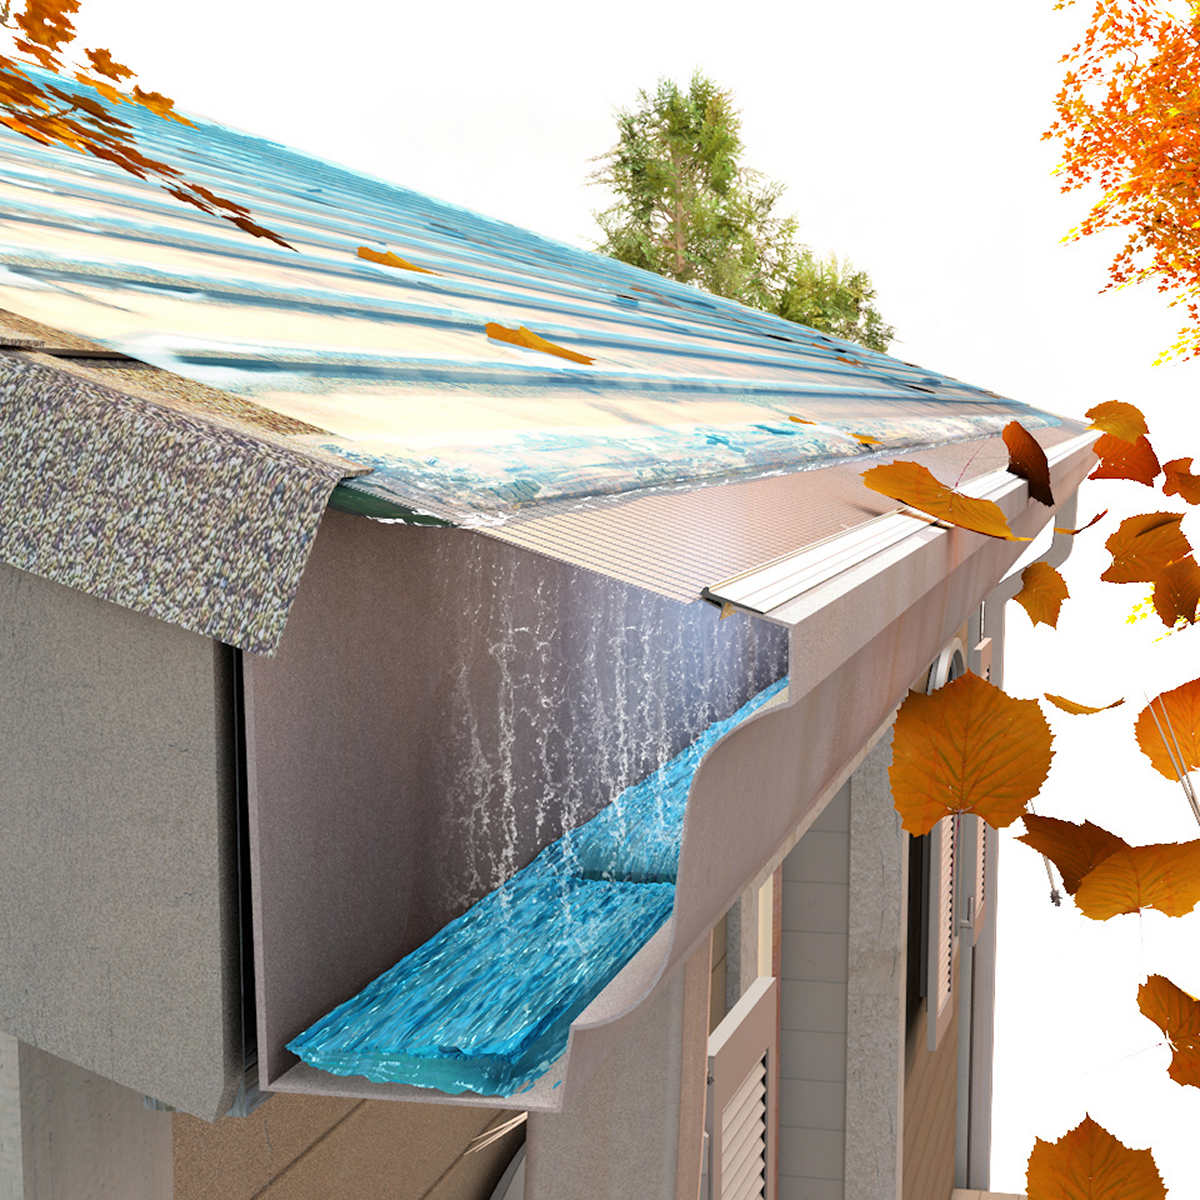 How much for gutter guards installed - How Much For Gutter Guards Installed 27